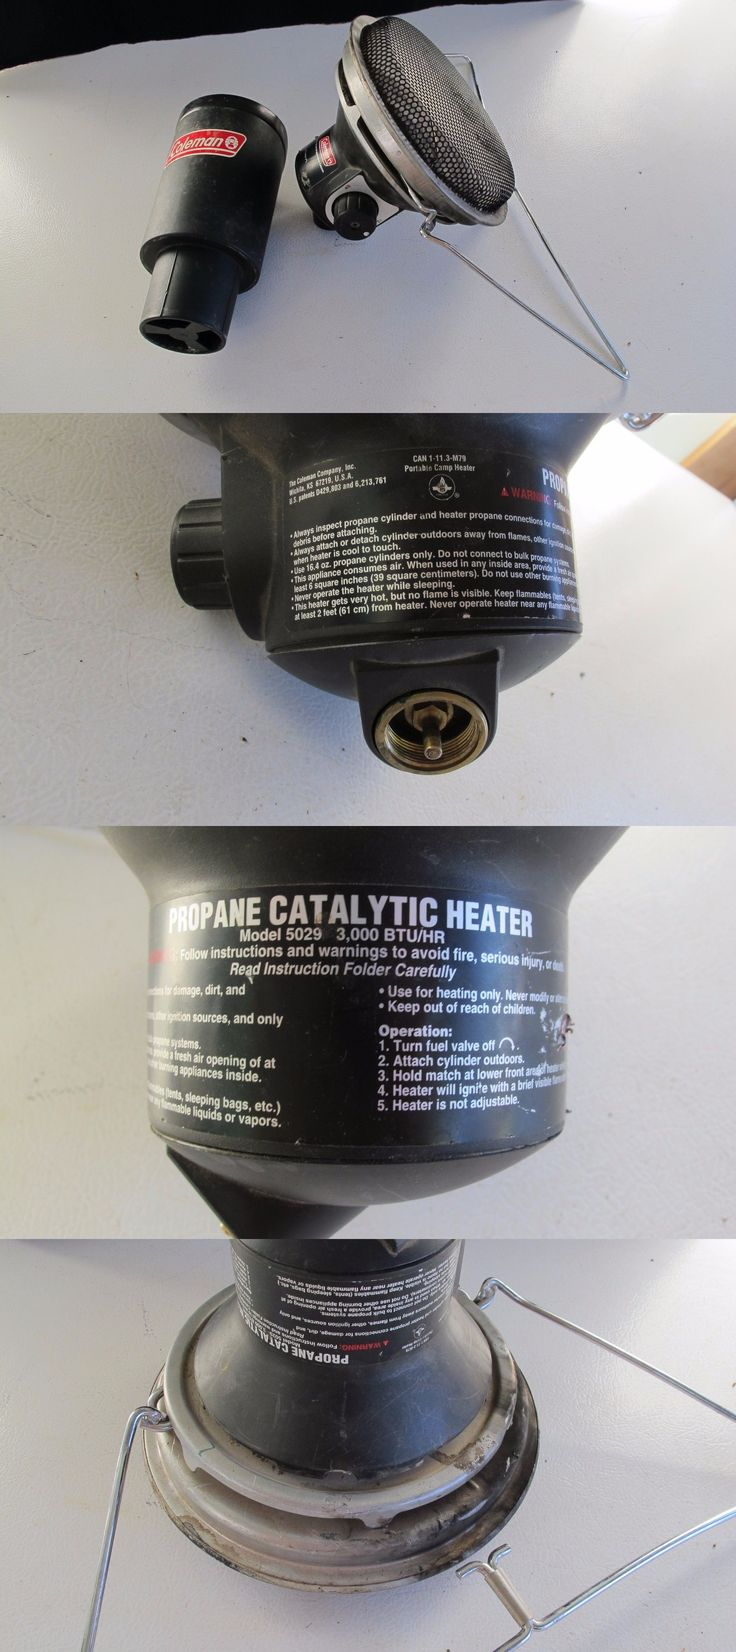 Generators and Heaters 16039: Coleman Portable Catalytic Propane Heater And Cup Holder Camping, Golf Cart, Tent -> BUY IT NOW ONLY: $34.95 on eBay!